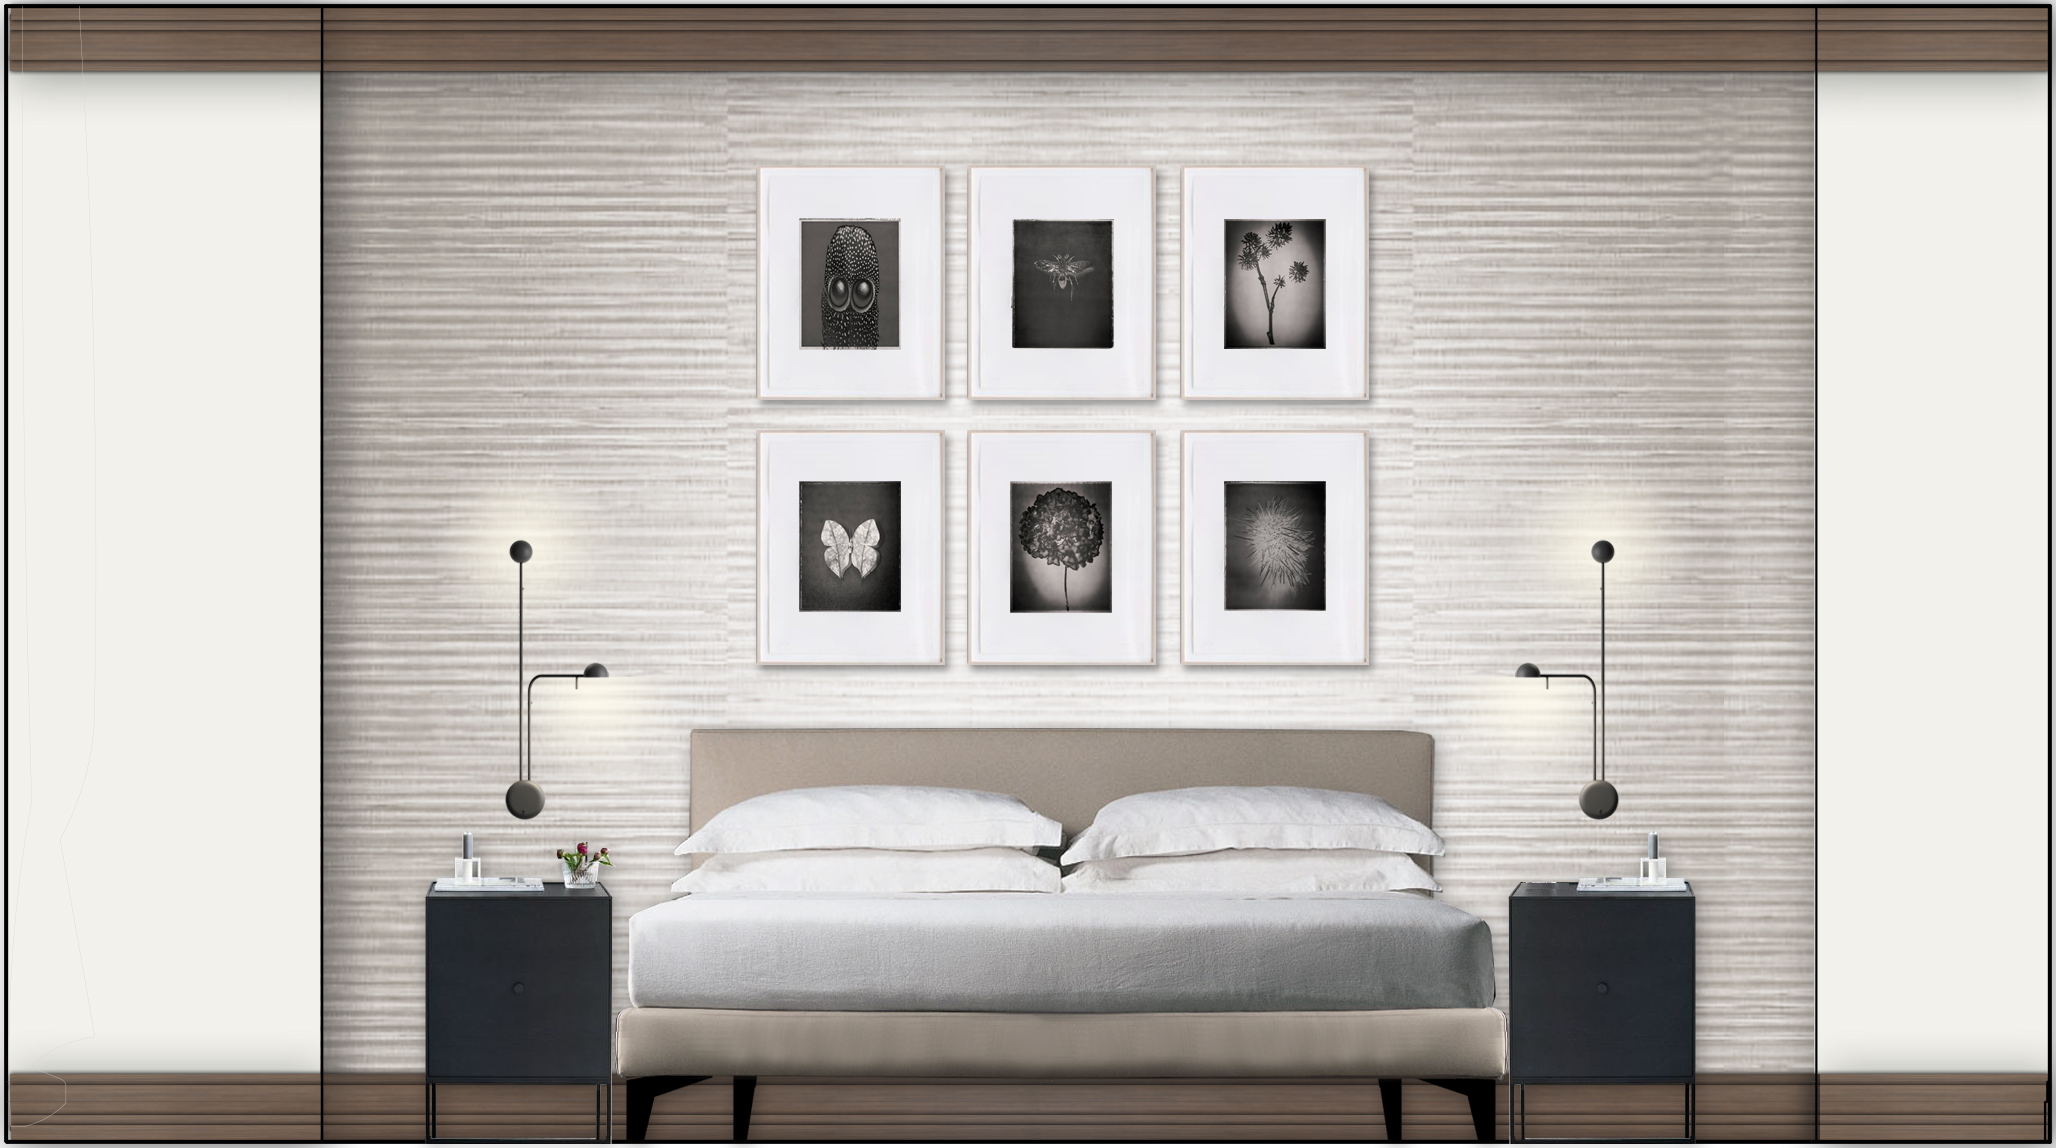 Rendered elevation of bed wall with selected art